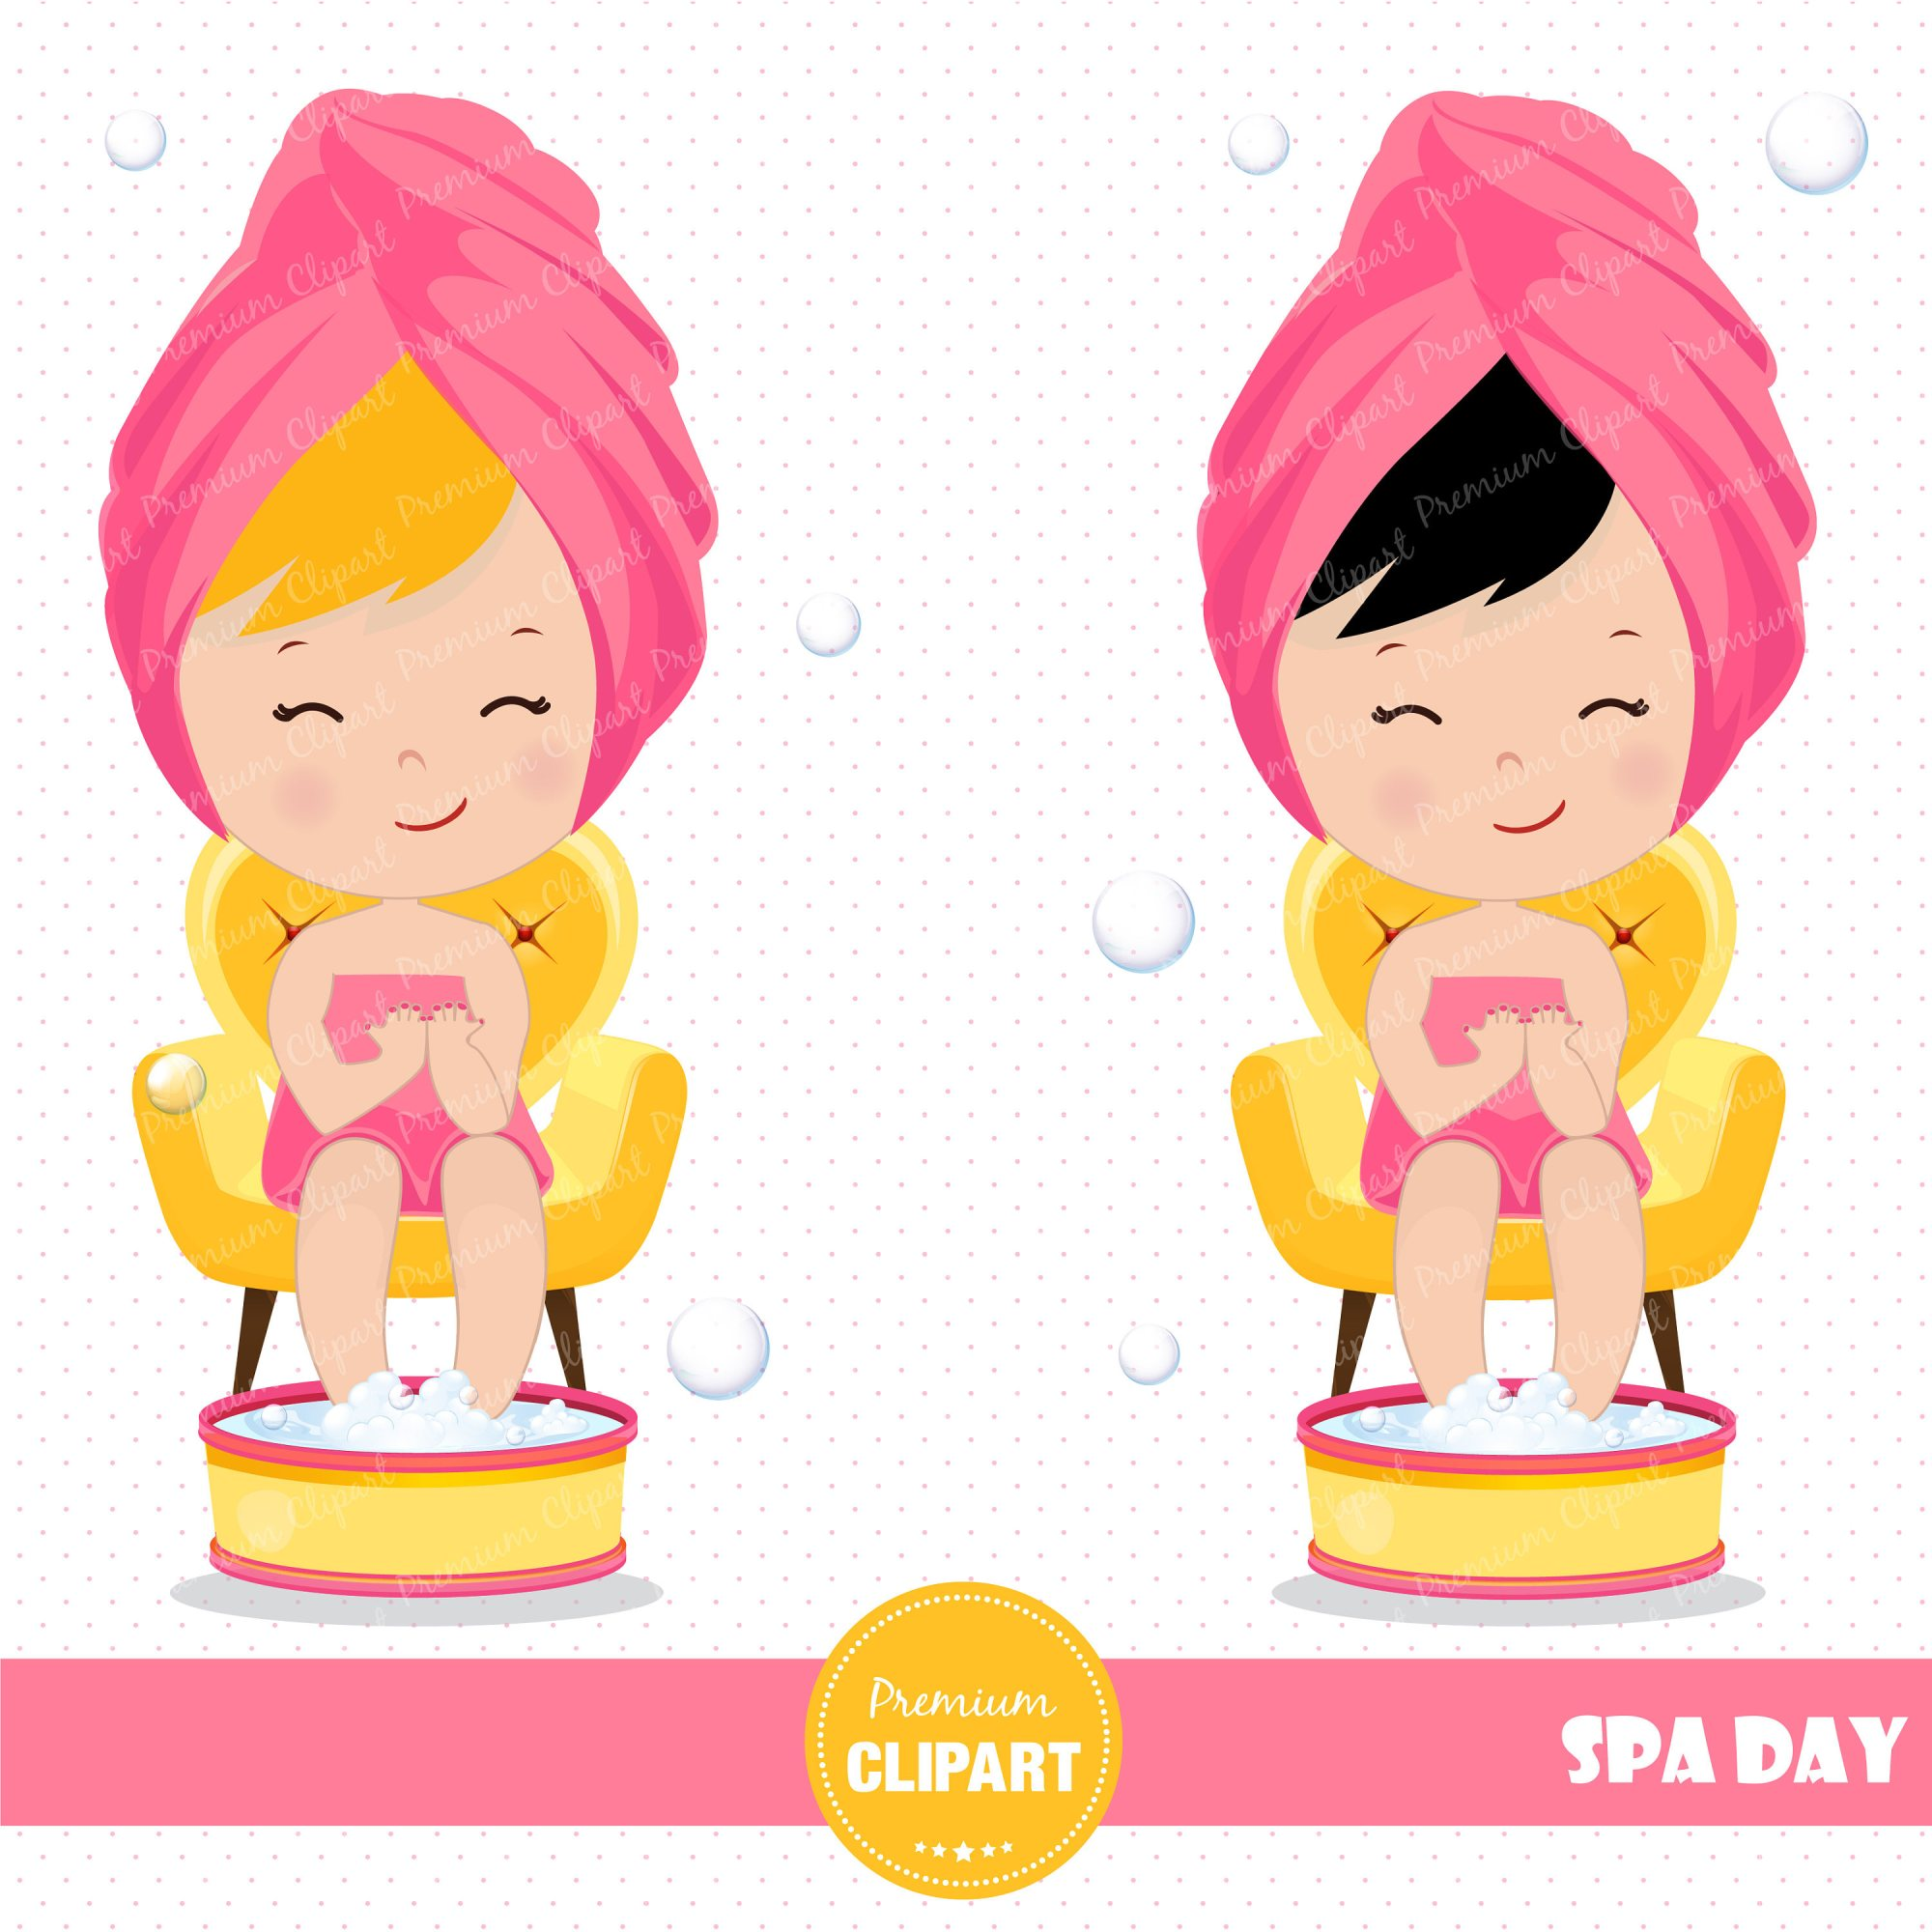 hight resolution of 3000x3000 spa girl clipart spa party spa clipart girl clipart spa girl